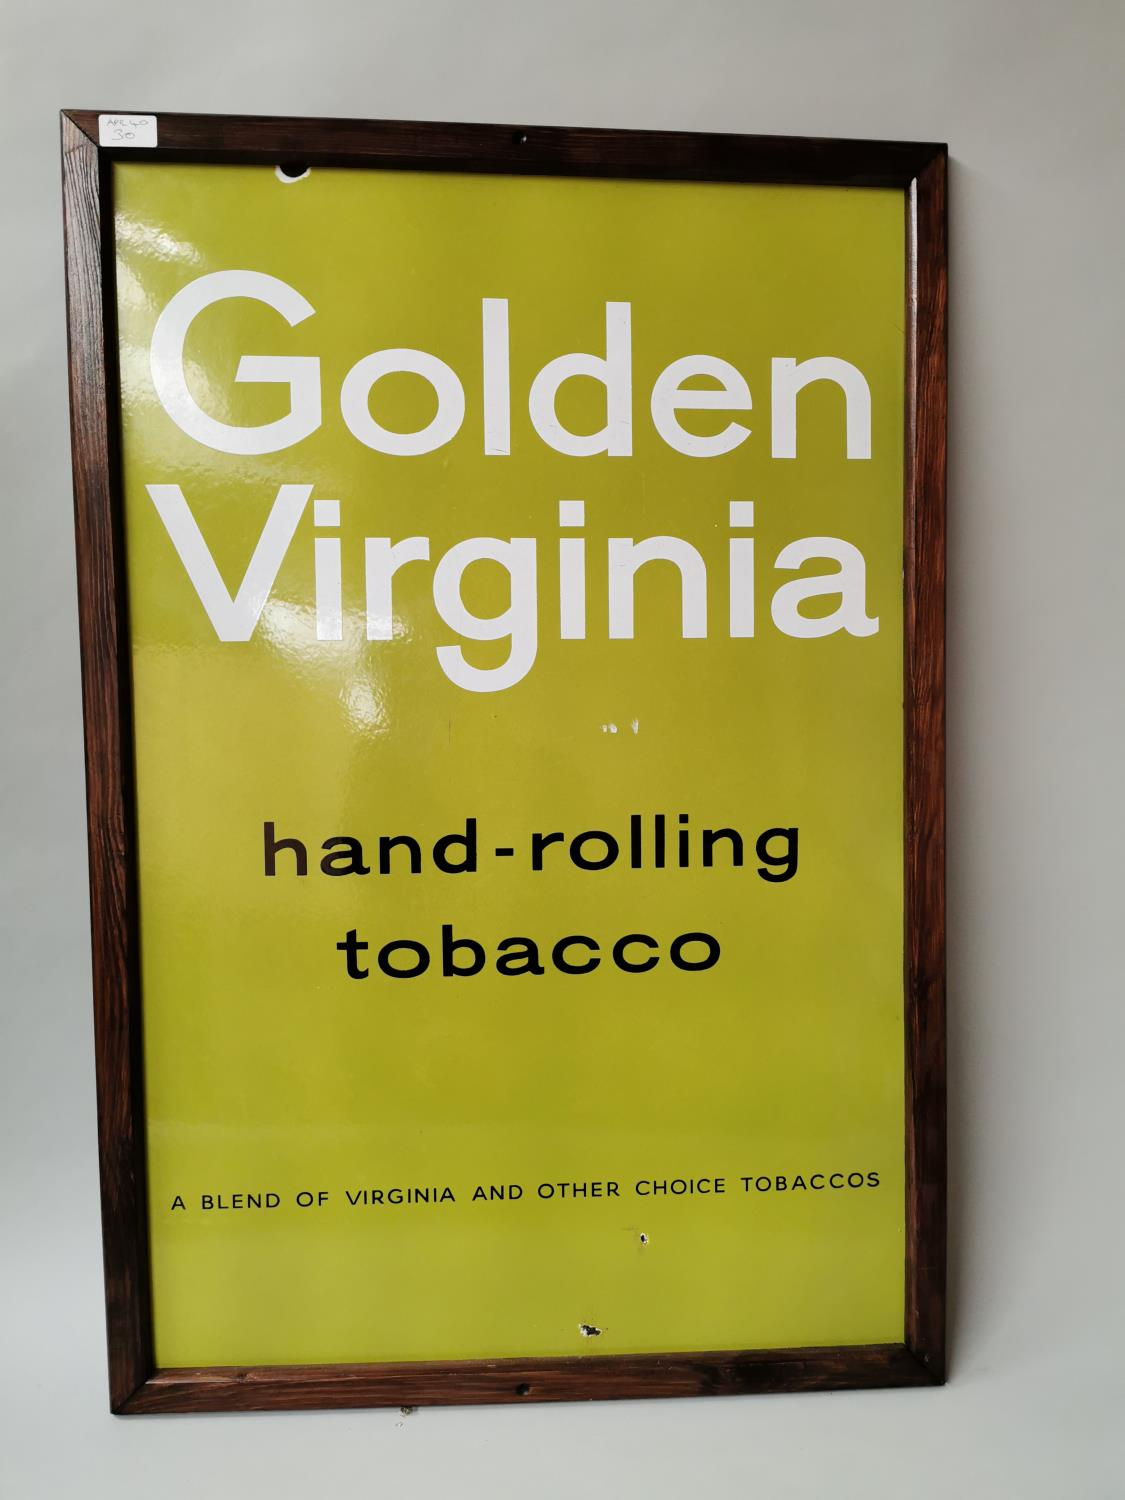 Golden Virginia Tobacco enamel advertising sign.